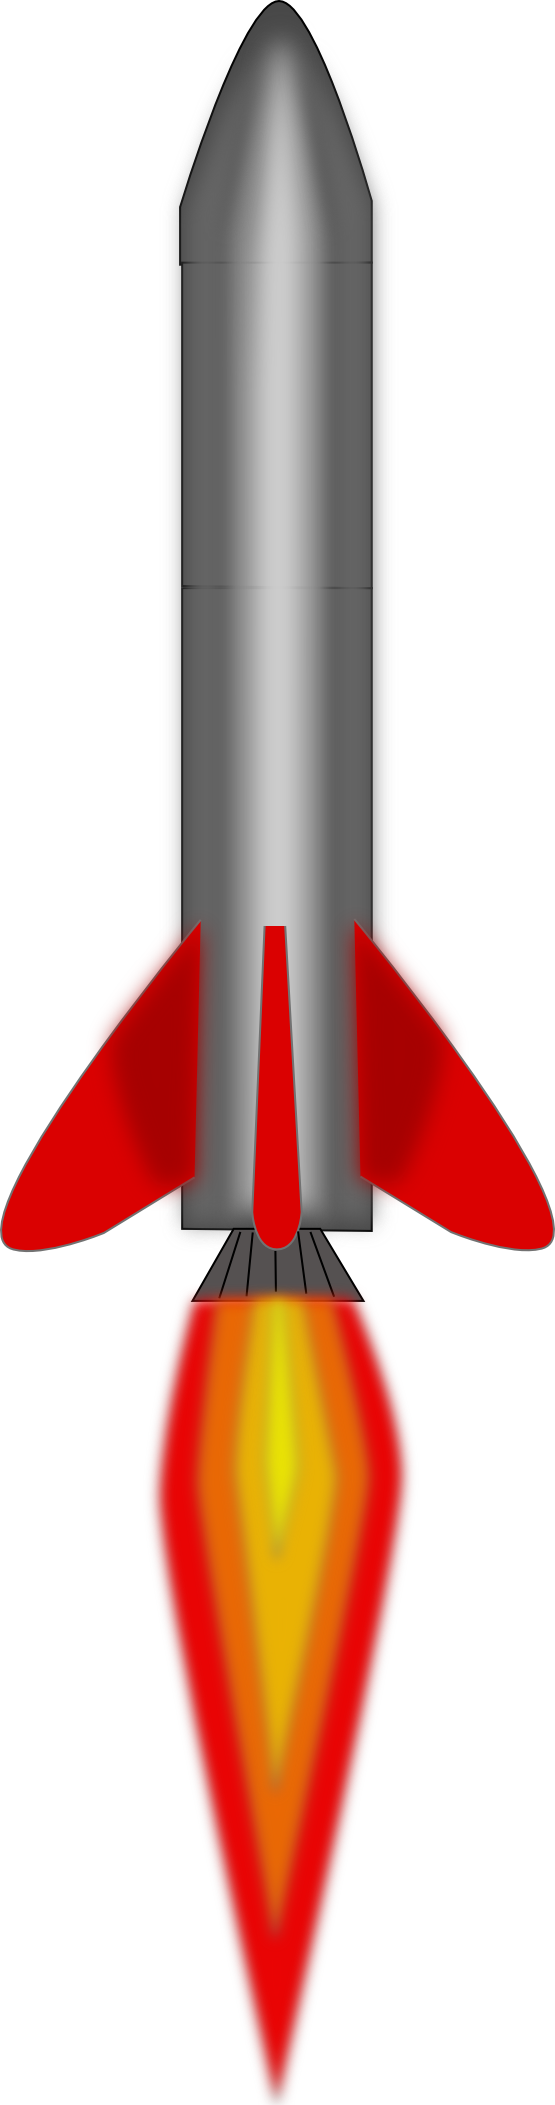 Missile clipart space rocket Missile Art Clip Free missile